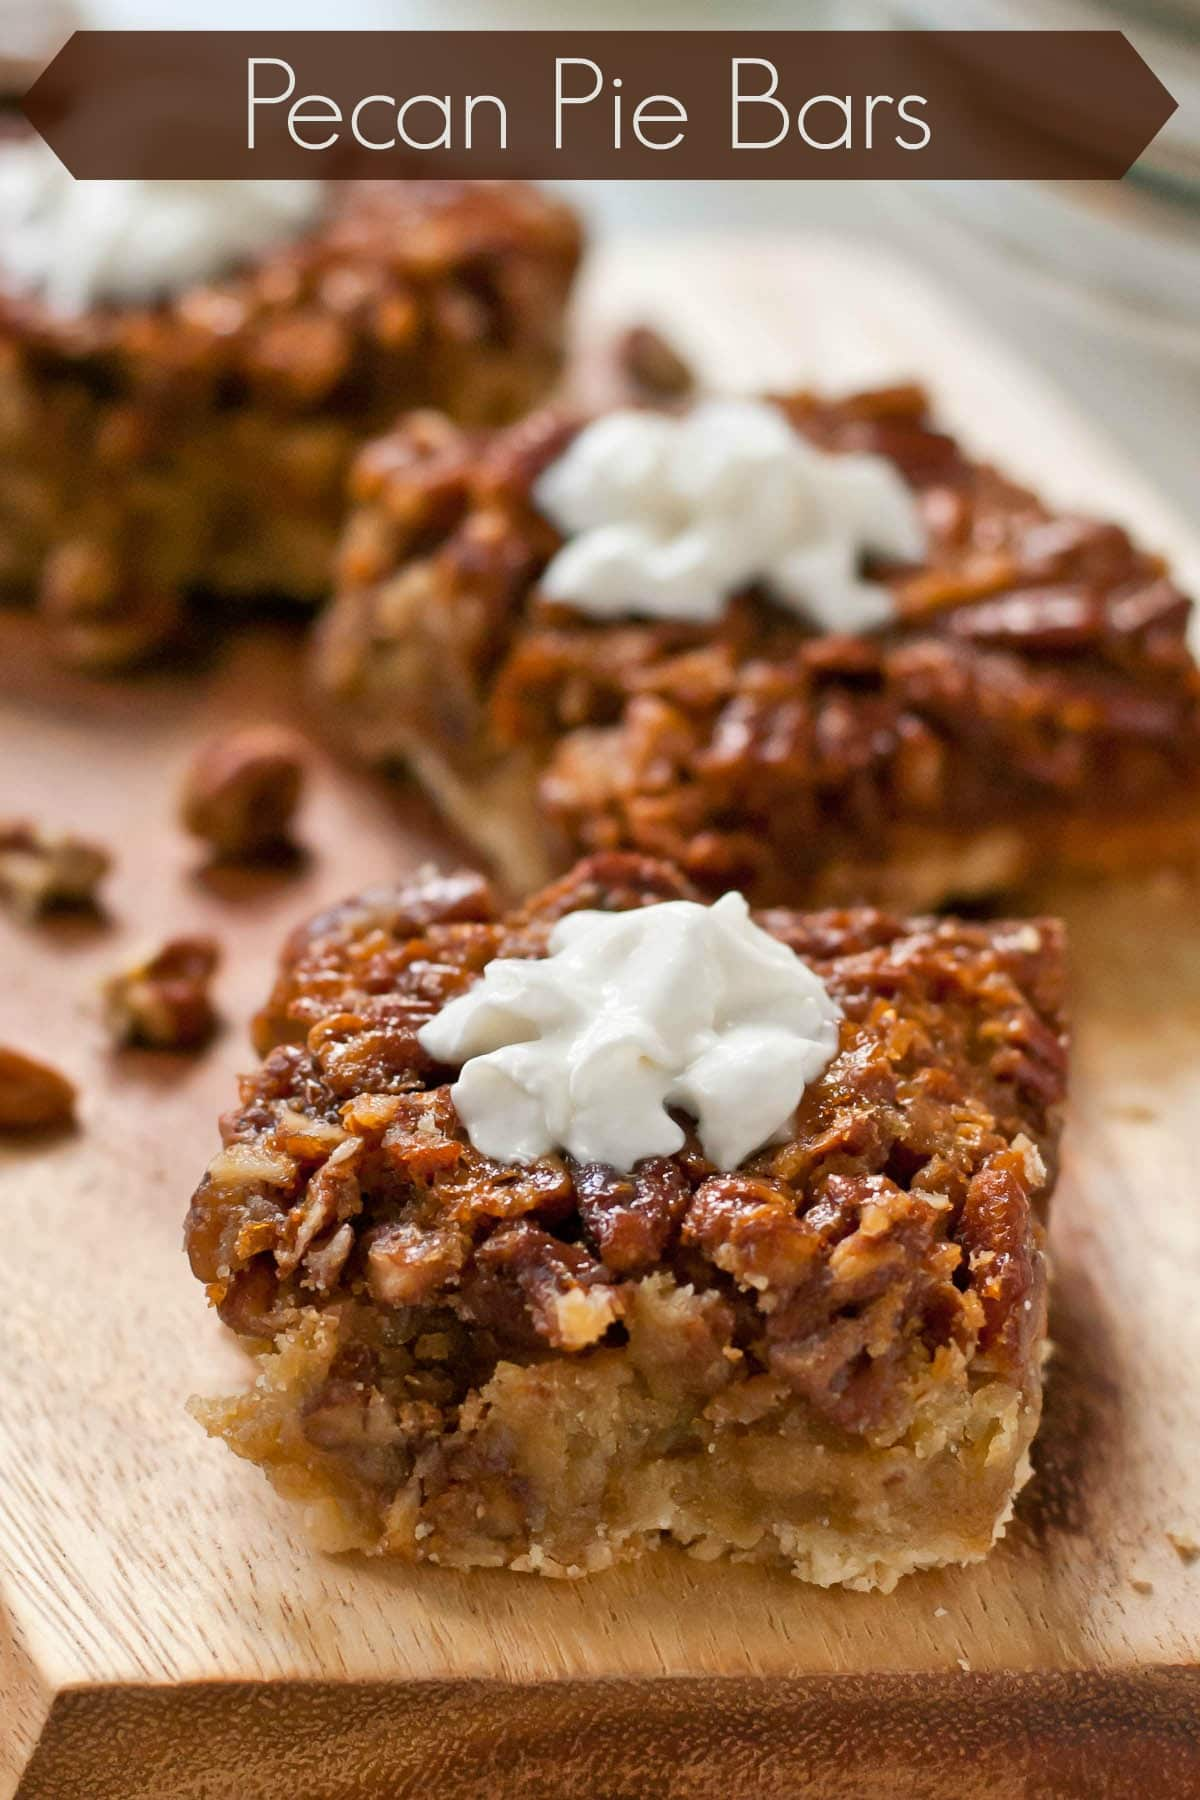 These ooey gooey Pecan Pie Bars are the perfect Thanksgiving dessert.